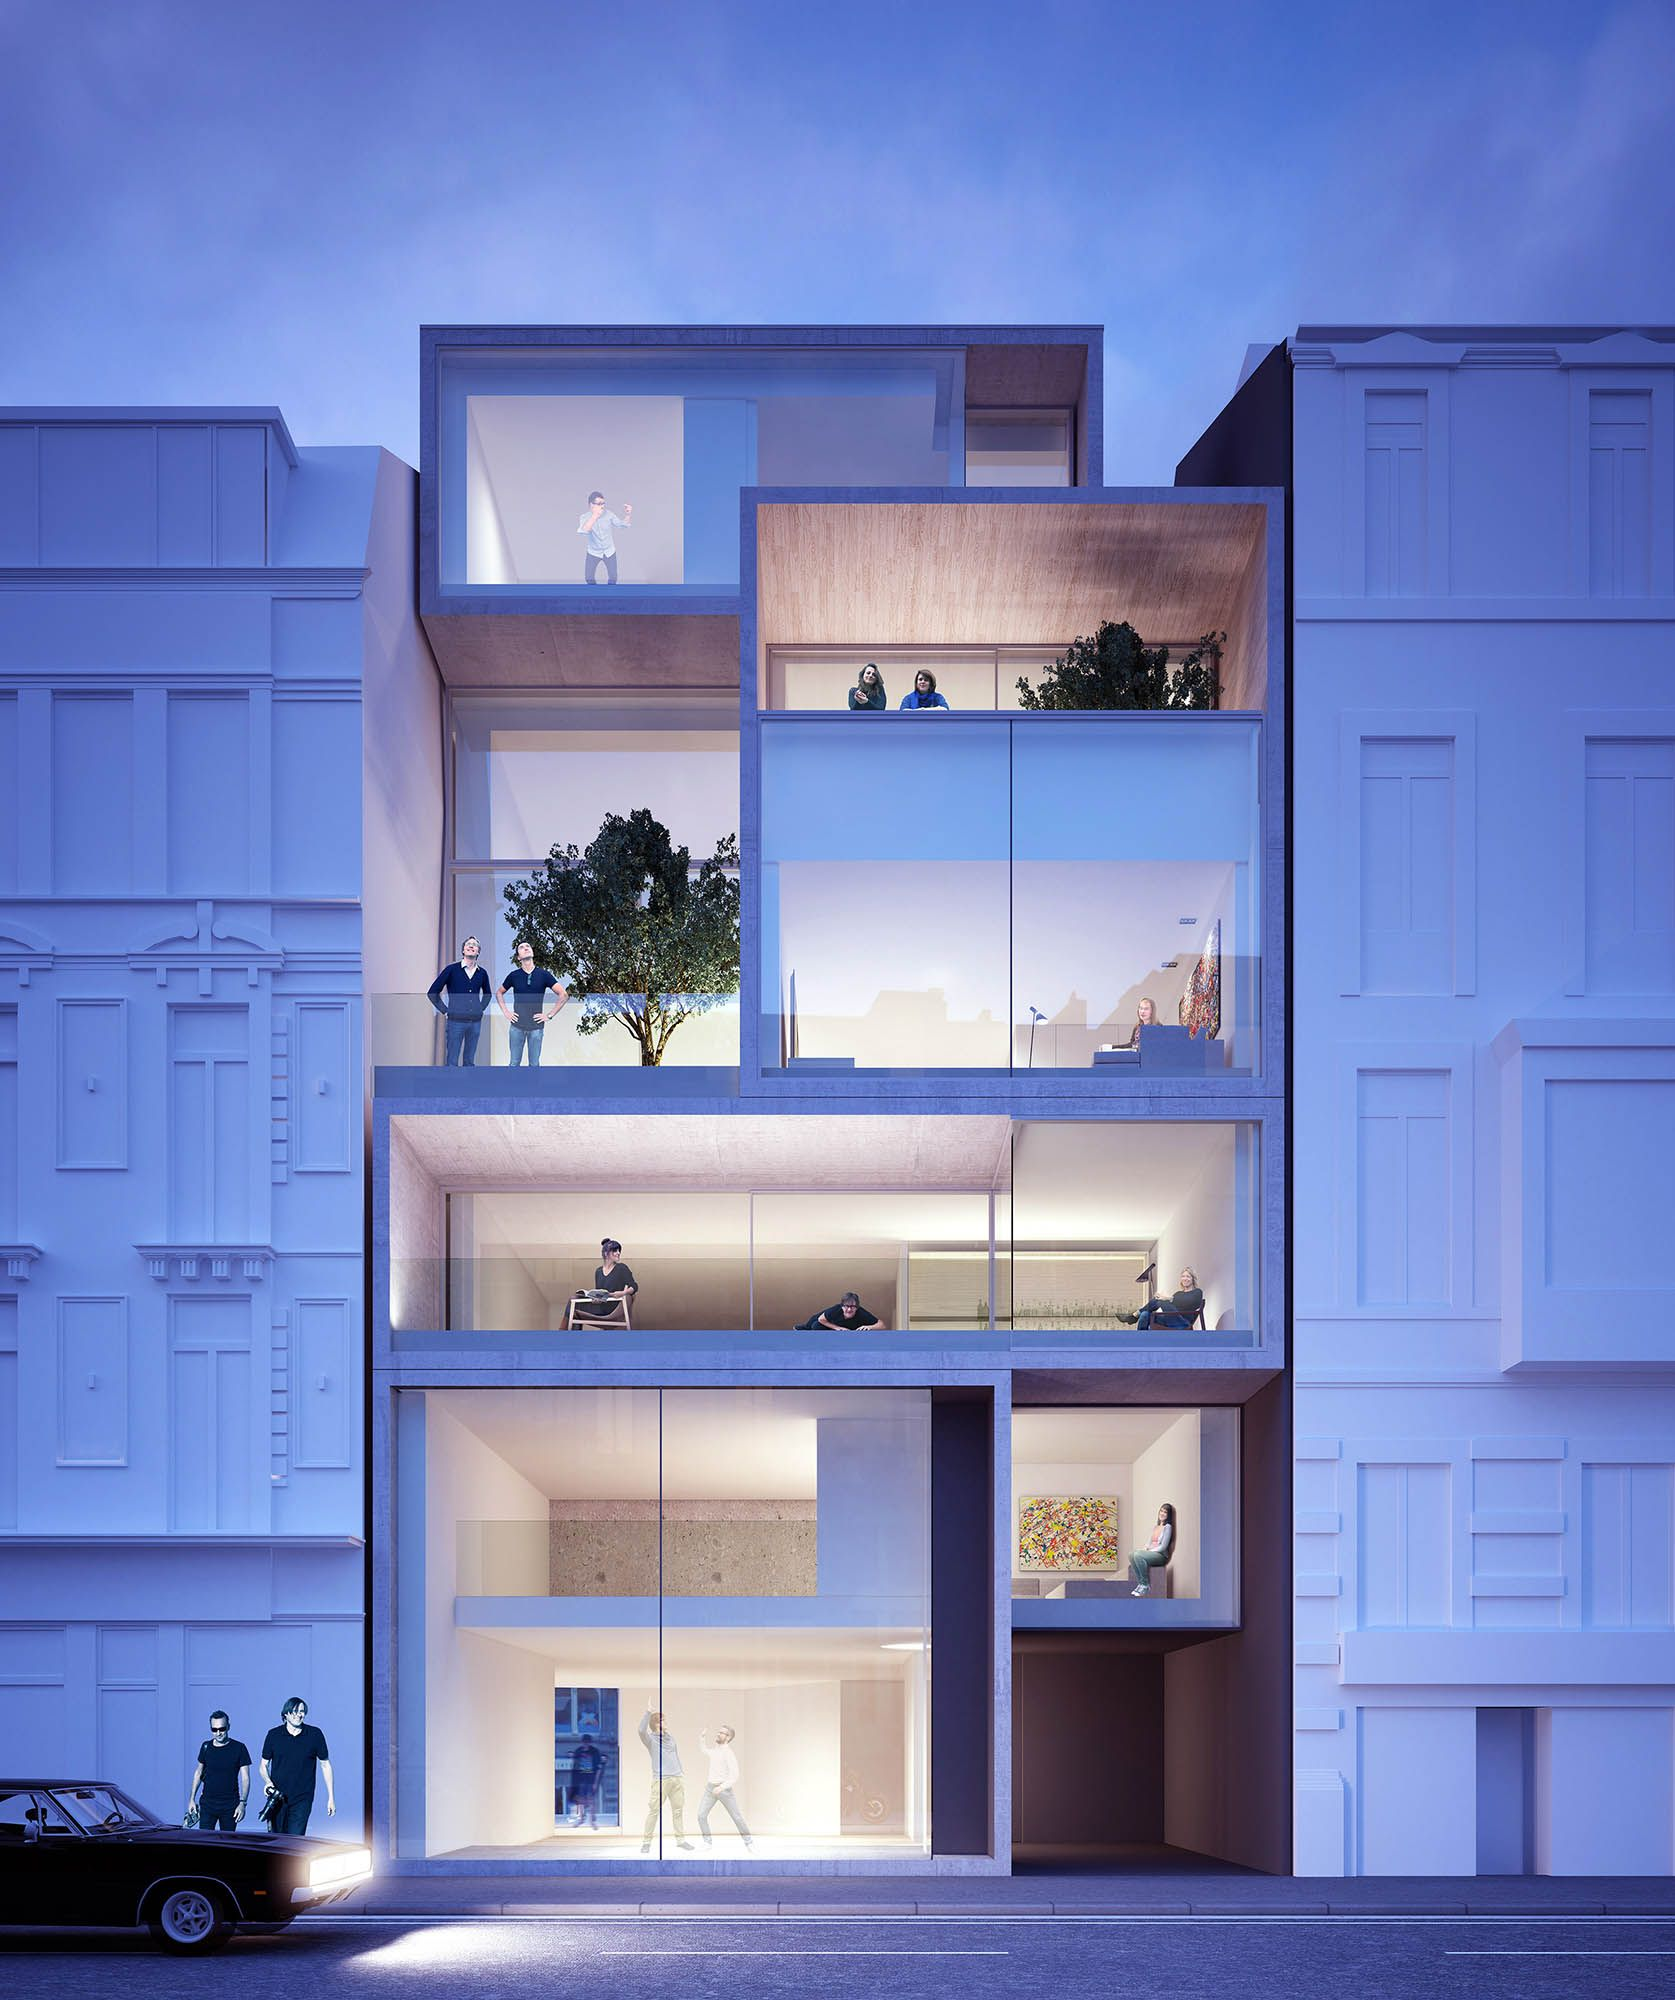 Multiresidential Golden Ratio Gent Vlaanderenstraat // ABS Bouwteam //  Govaert & Vanhoutte Architects